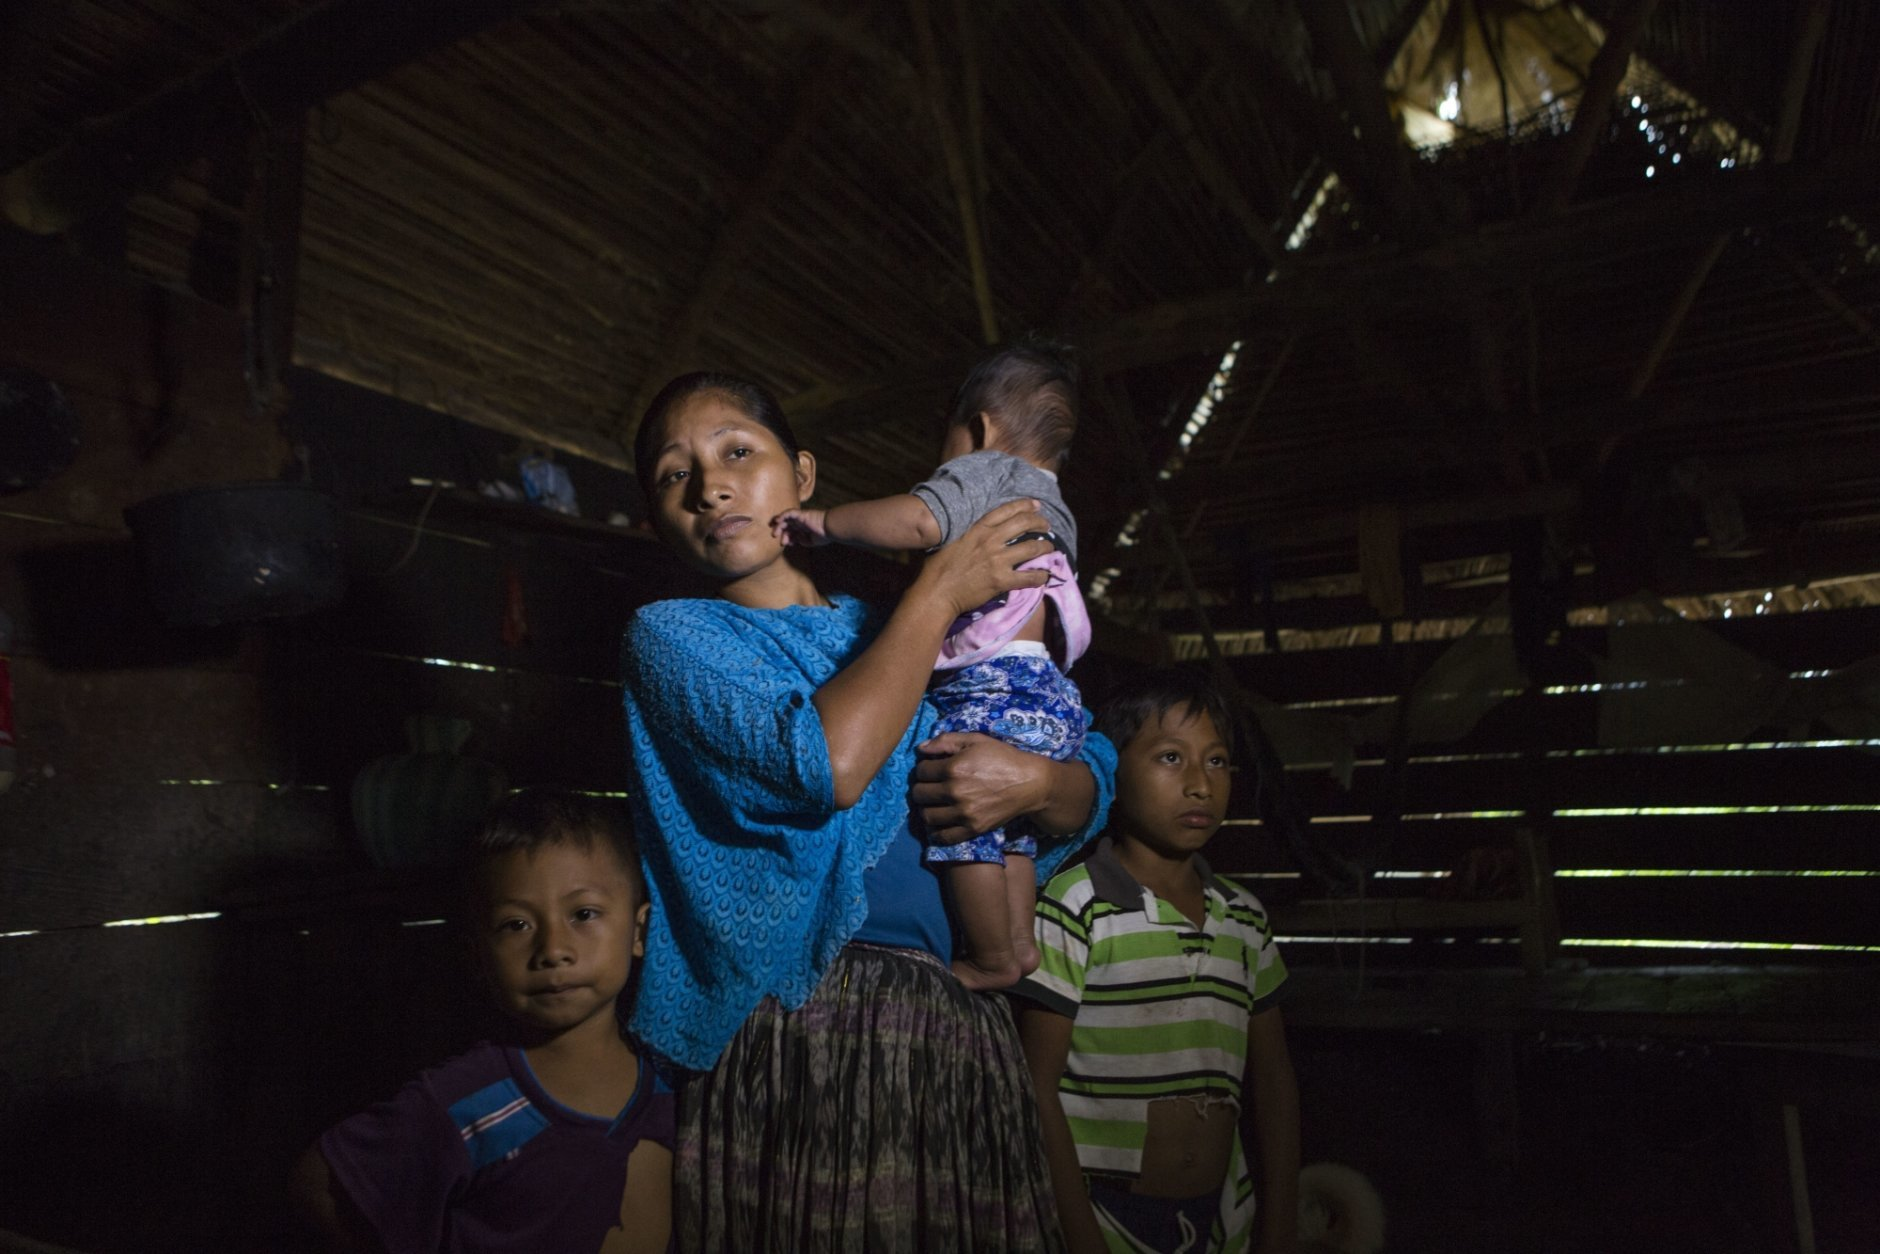 Claudia Maquin, 27, answers questions from journalists with her three children, Elvis Radamel Aquiles Caal Maquin, 5, left, Angela Surely Mariela Caal Maquin, 6 months, middle, and Abdel Johnatan Domingo Caal Maquin, 9, right, in Raxruha, Guatemala, on Saturday, Dec. 15, 2018. Claudia Maquin's daughter, 7-year old Jakelin Amei Rosmery Caal, died in a Texas hospital, two days after being taken into custody by border patrol agents in a remote stretch of New Mexico desert. (AP Photo/Oliver de Ros)